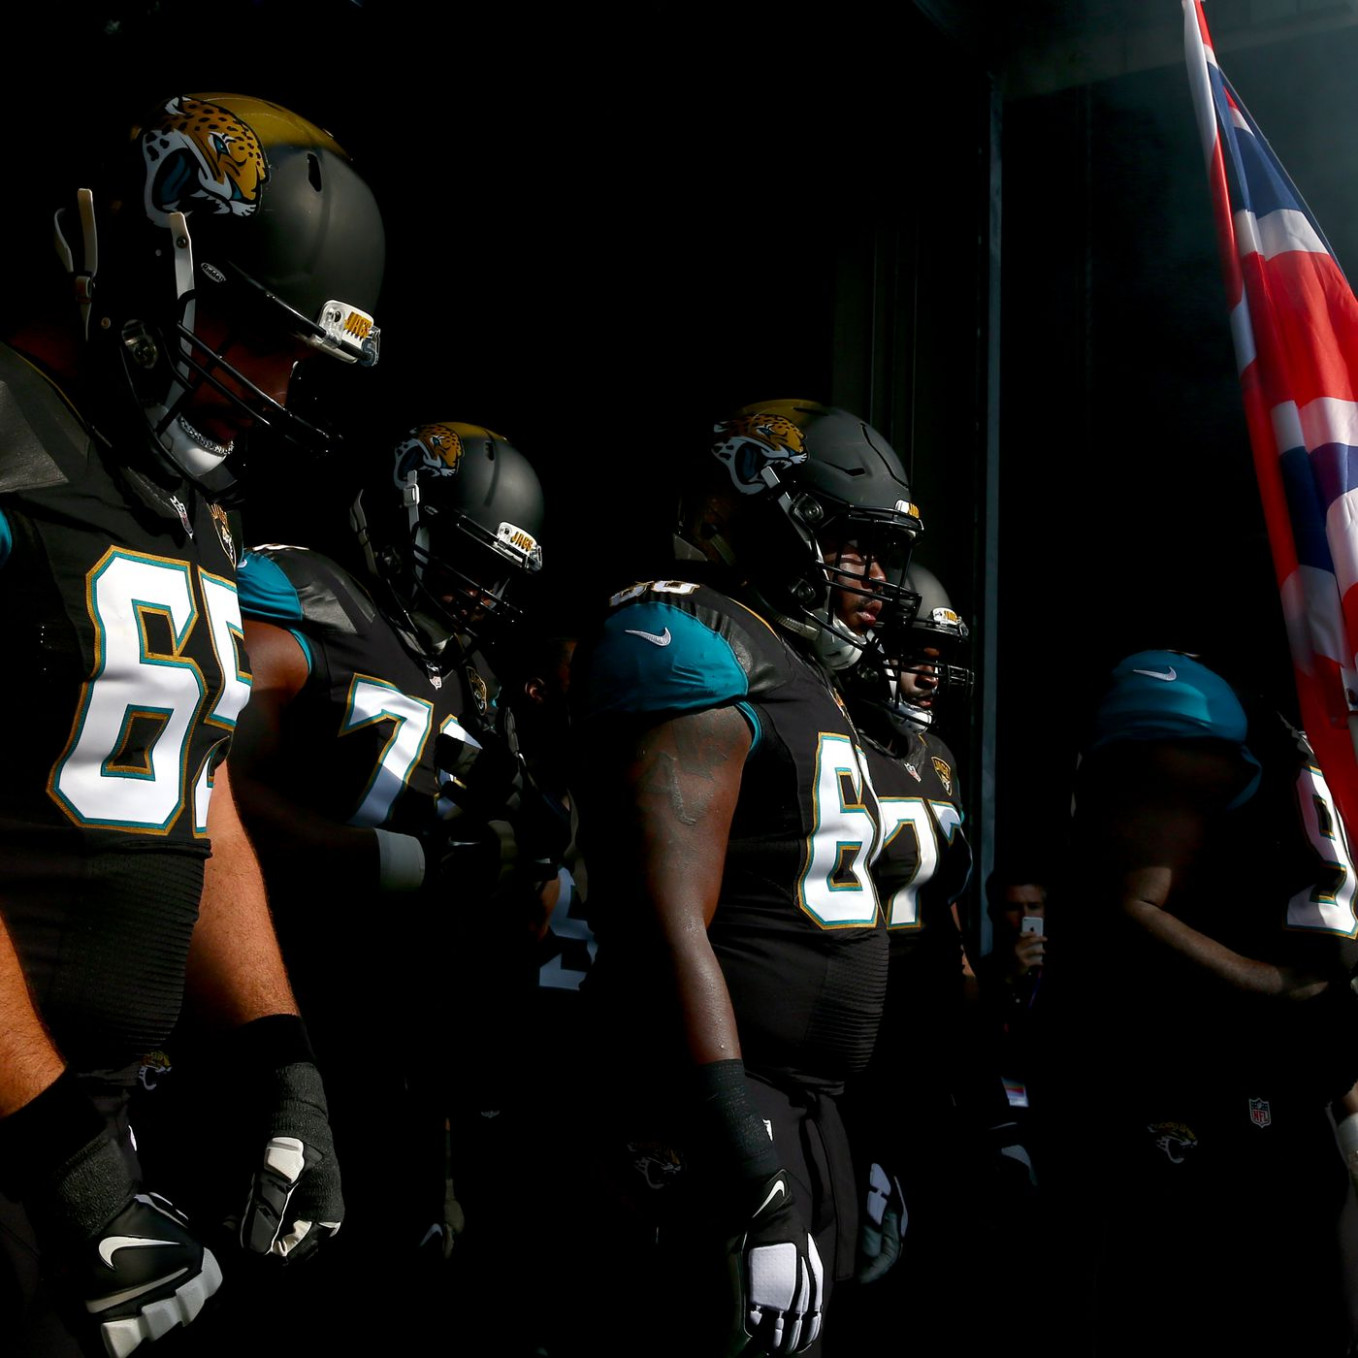 The Jaguars' decision to play 6 home games in London, explained ...